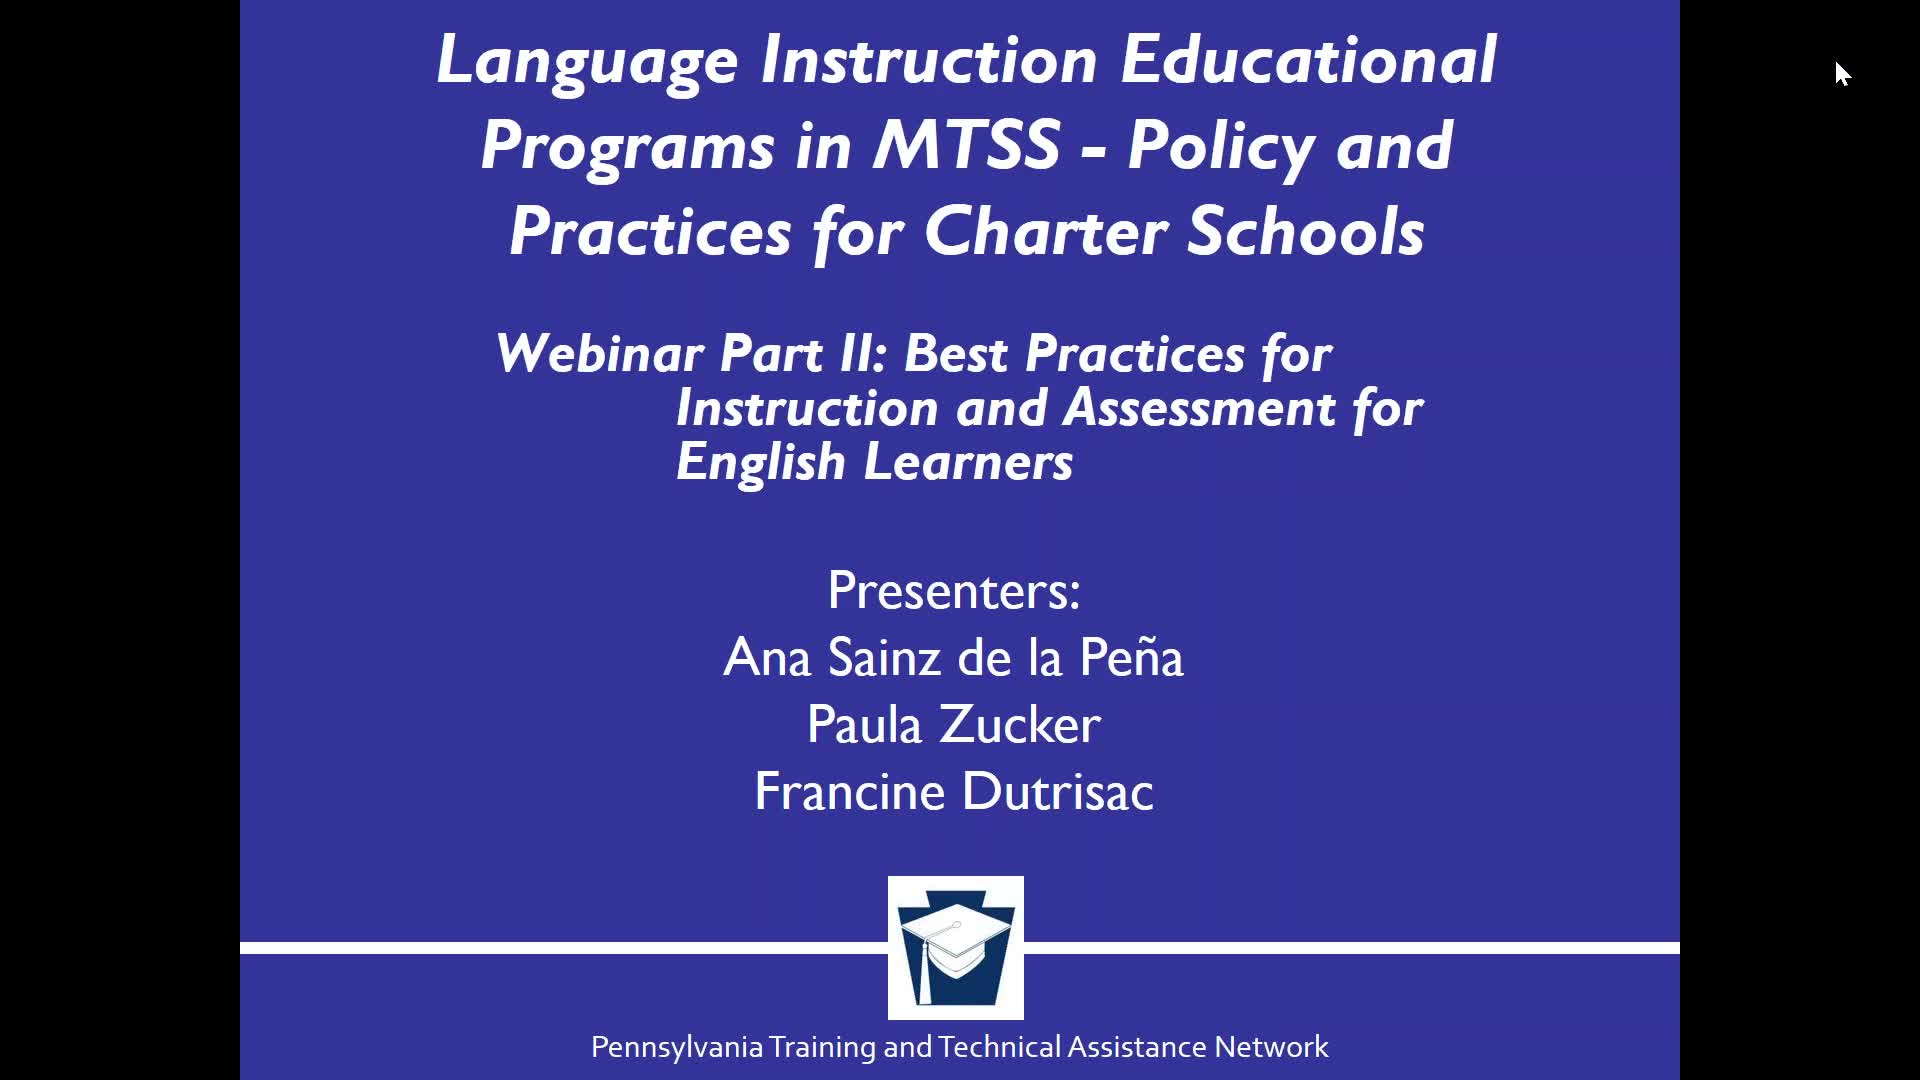 The Language Instruction Educational Programs in MTSS - Policy and Practices for Charter Schools